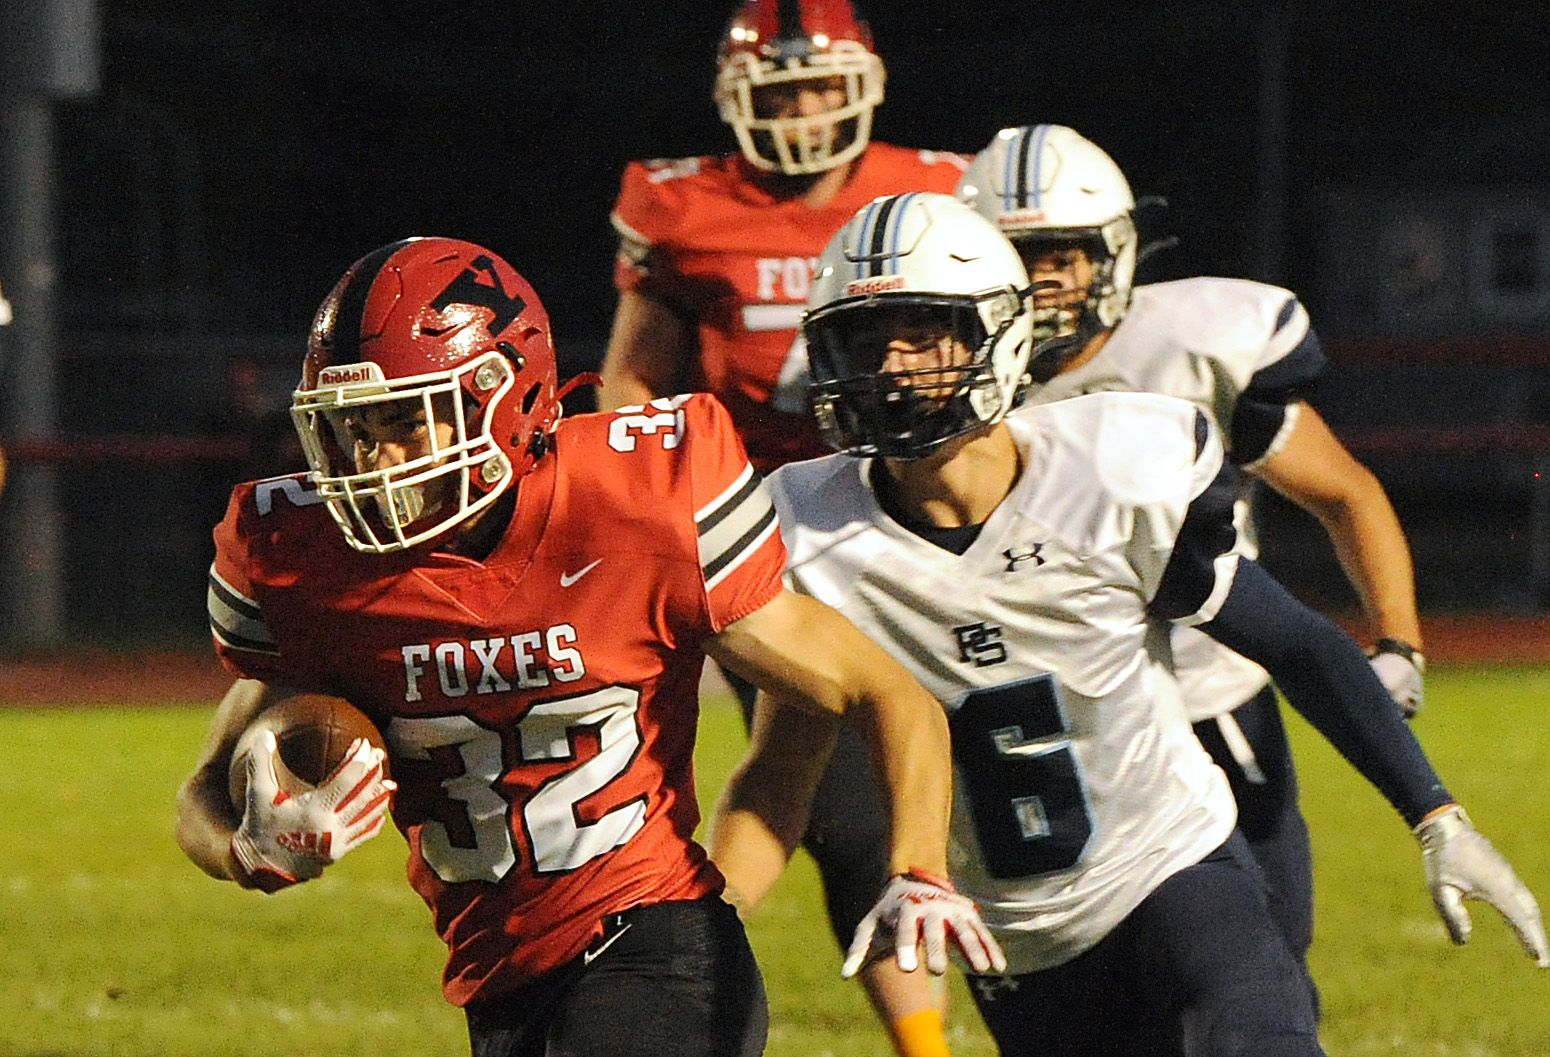 Yorkville runningback Gio Zeman (32) gets past Plainfield South safety Liam Drapeau on way to a touchdown during a varsity football game at Yorkville High School on Friday.